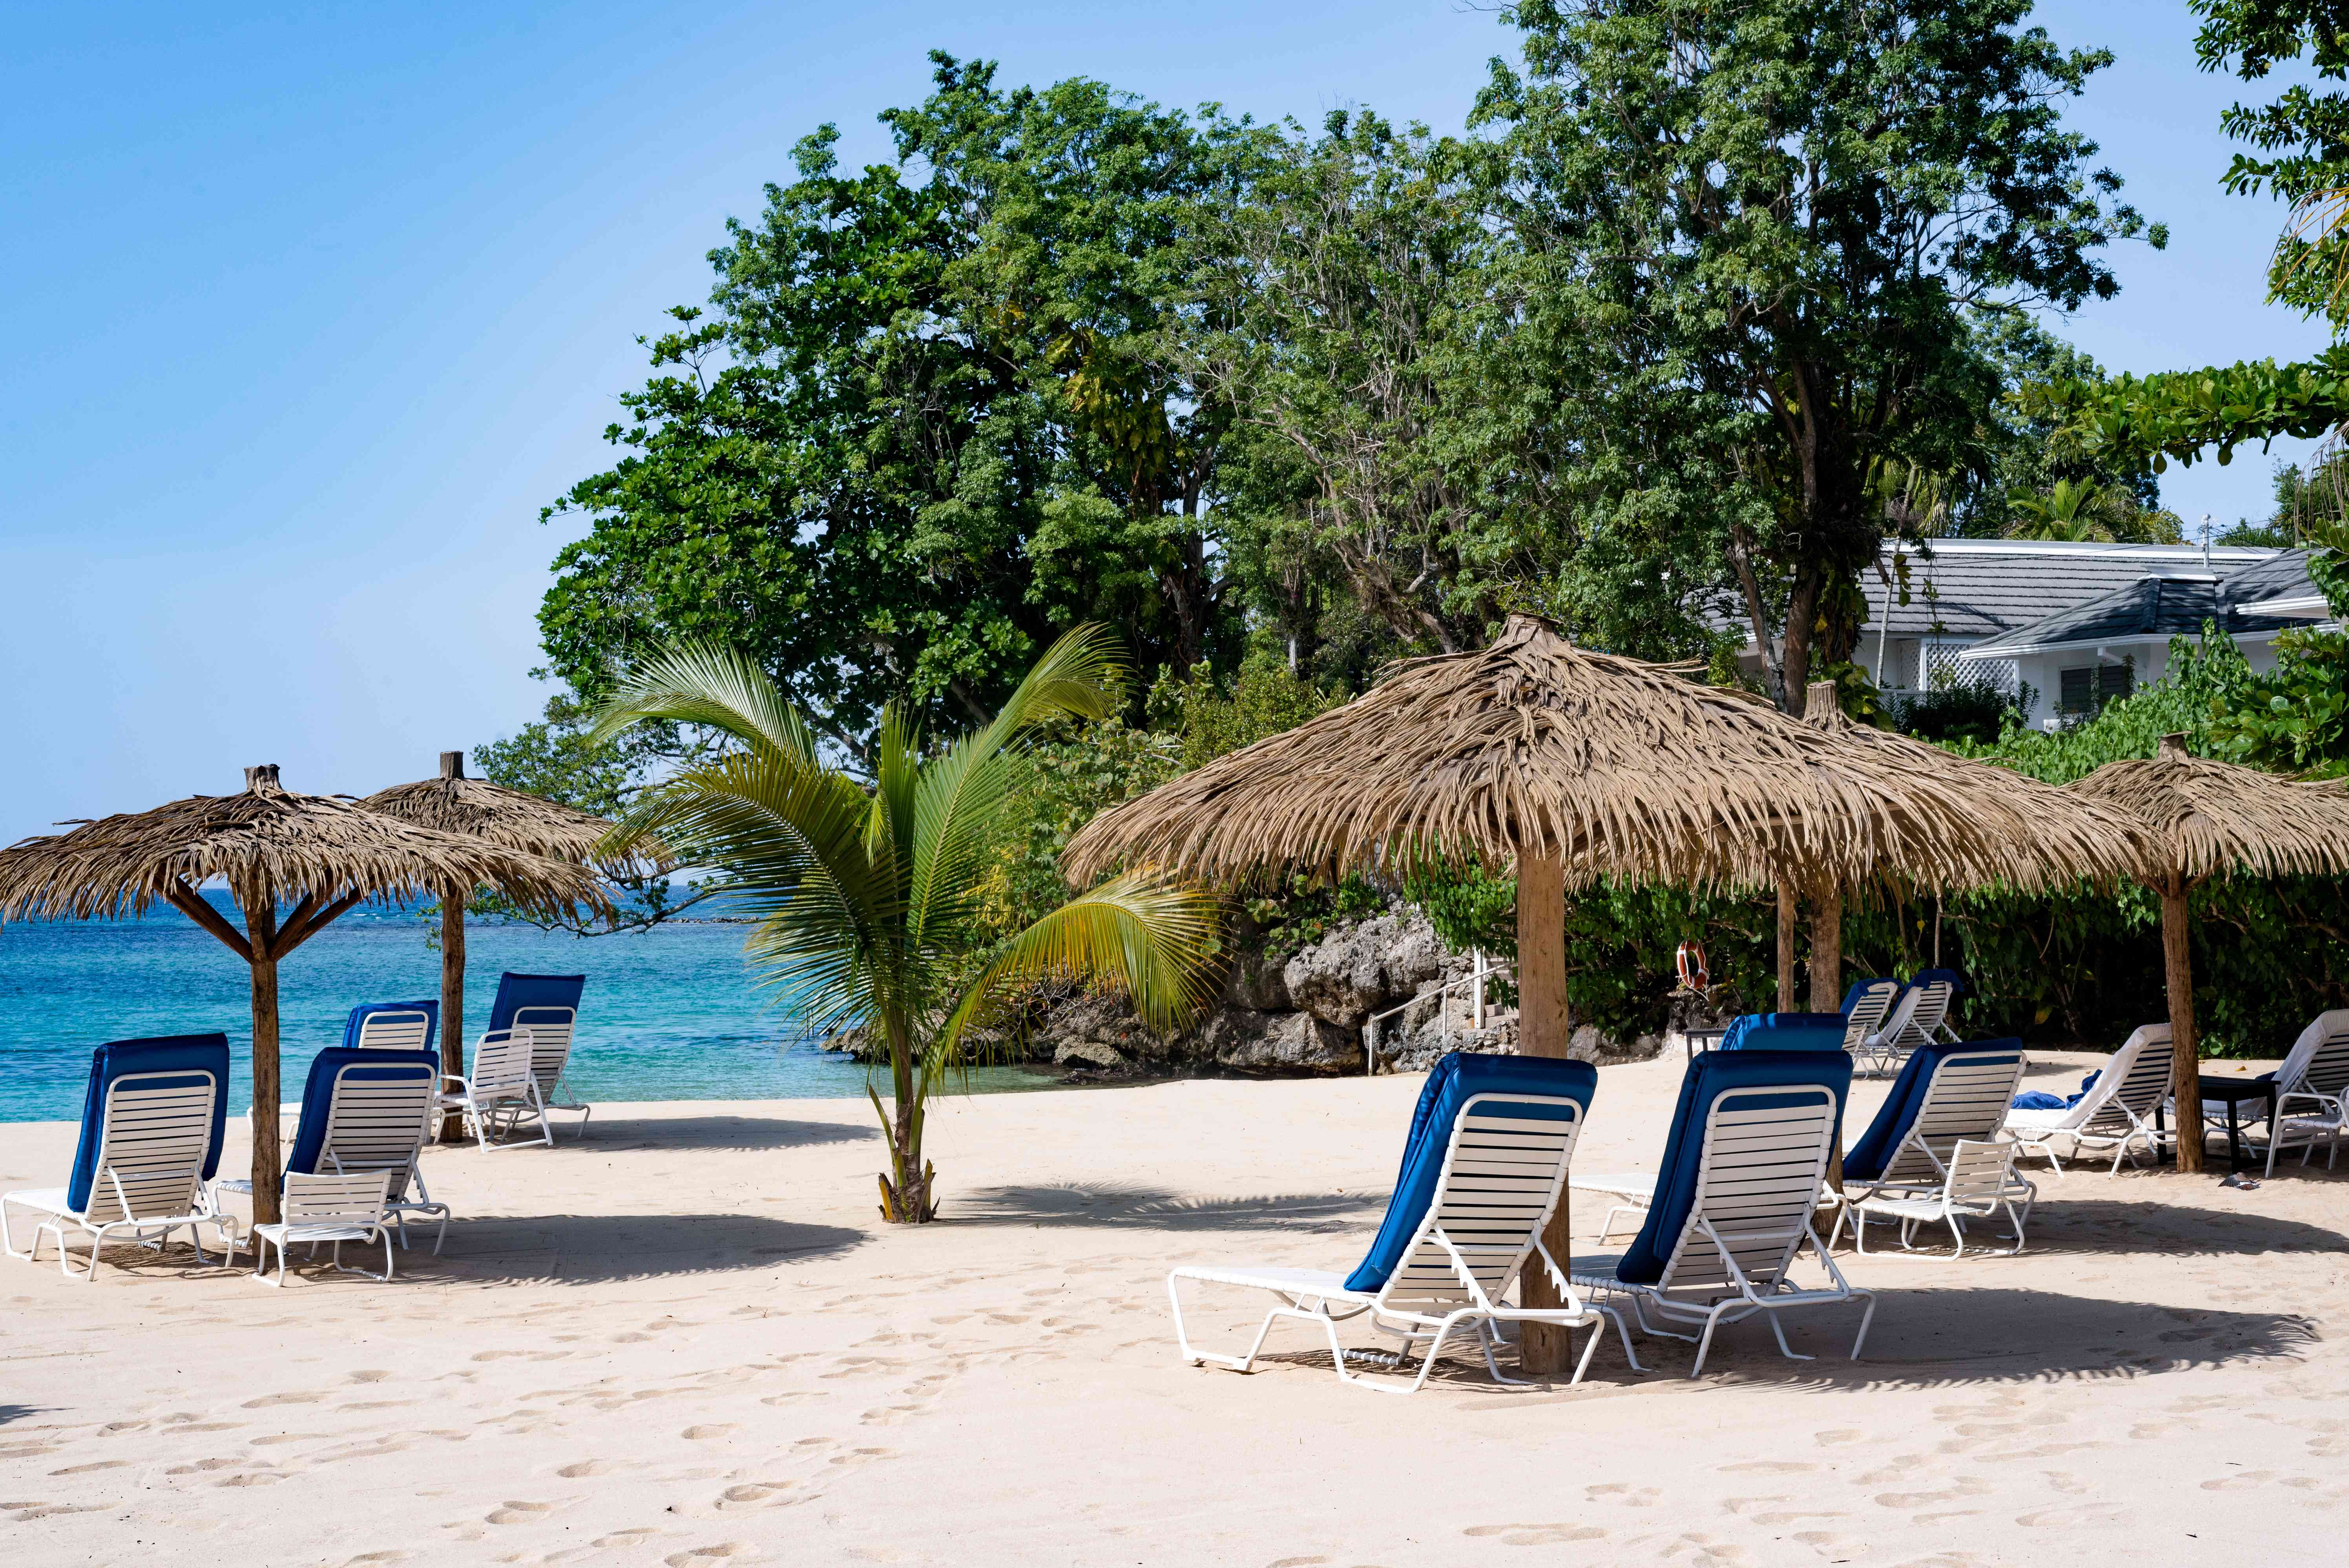 Lounge chairs under thatched umbrellas on a beach in Ocho Rios